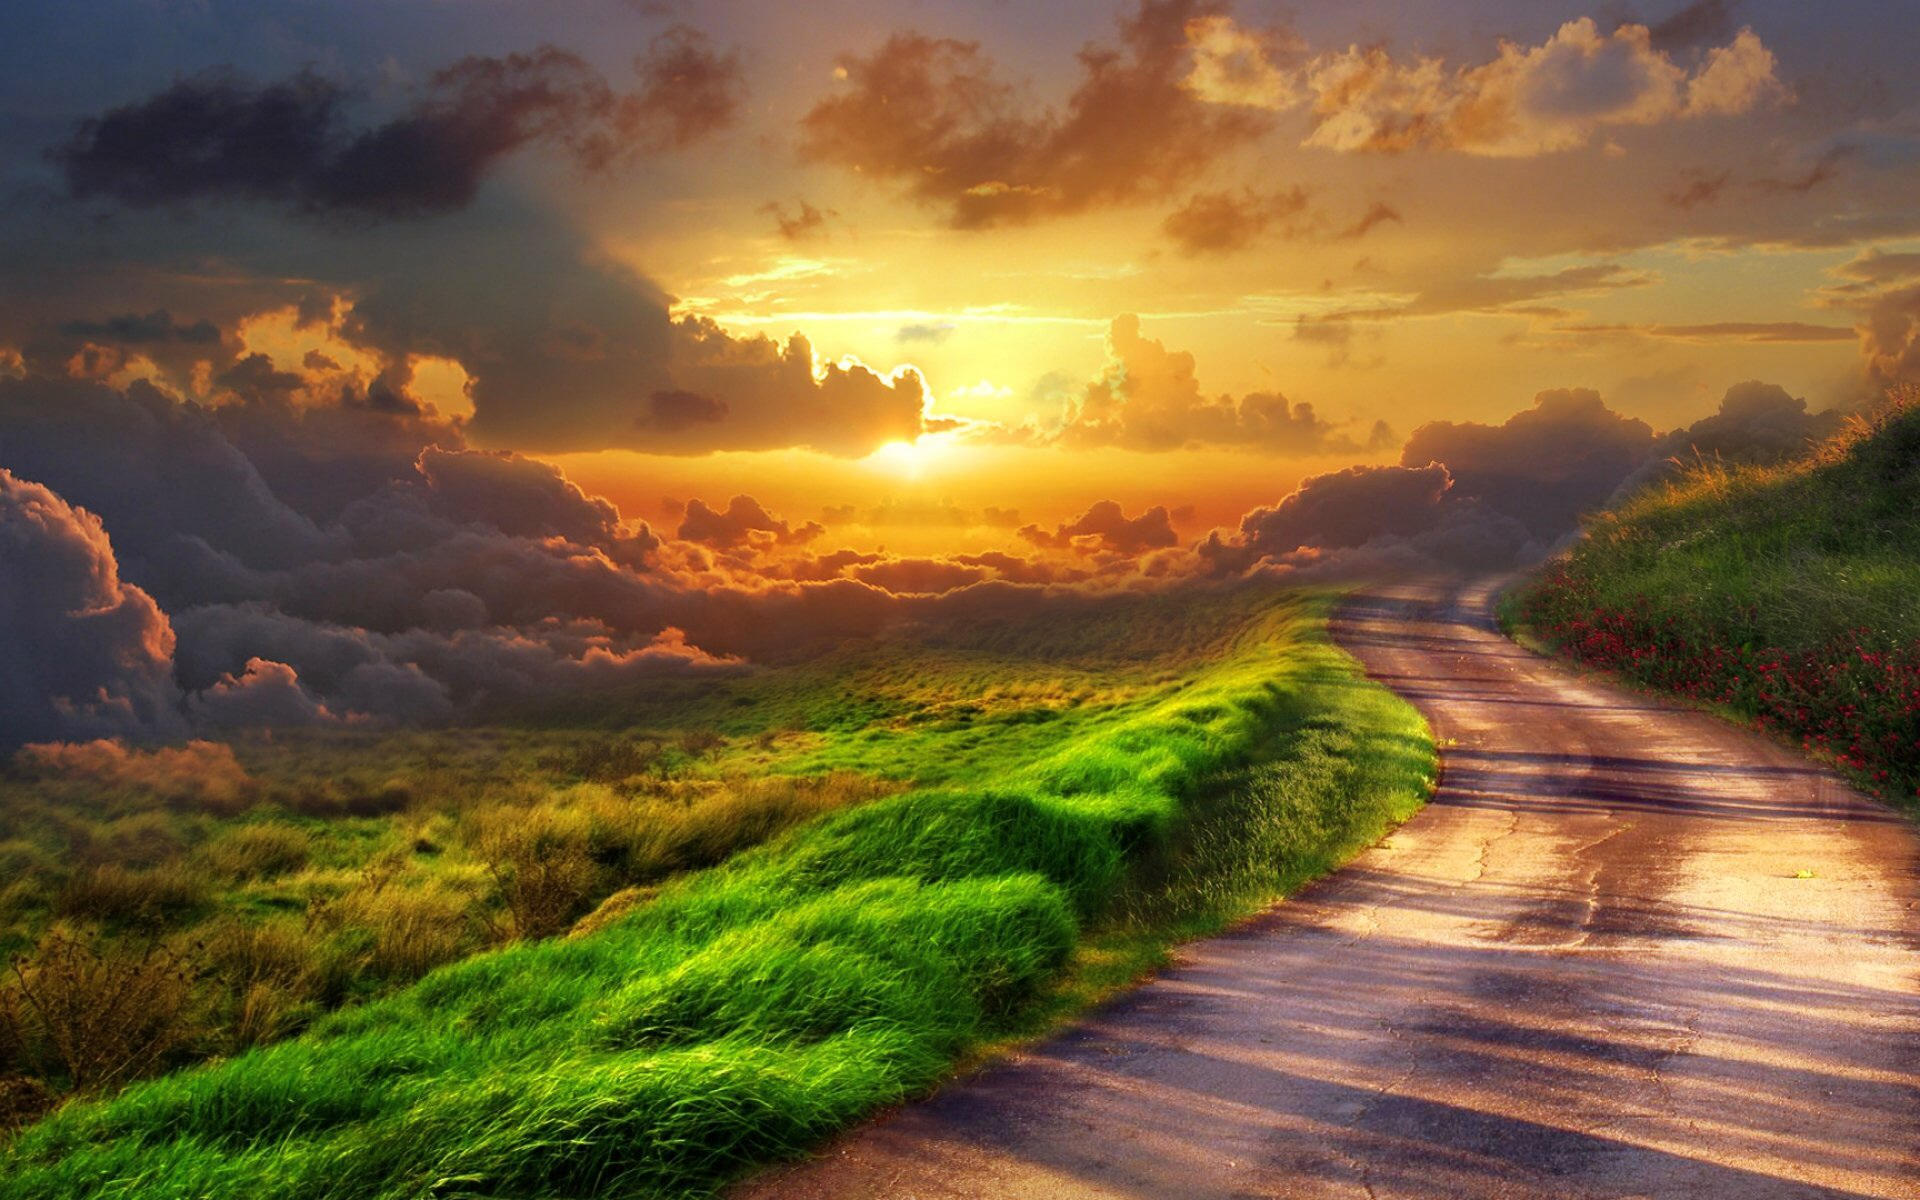 Home Wallpaper Life: Heaven Images Road To Heaven HD Wallpaper And Background